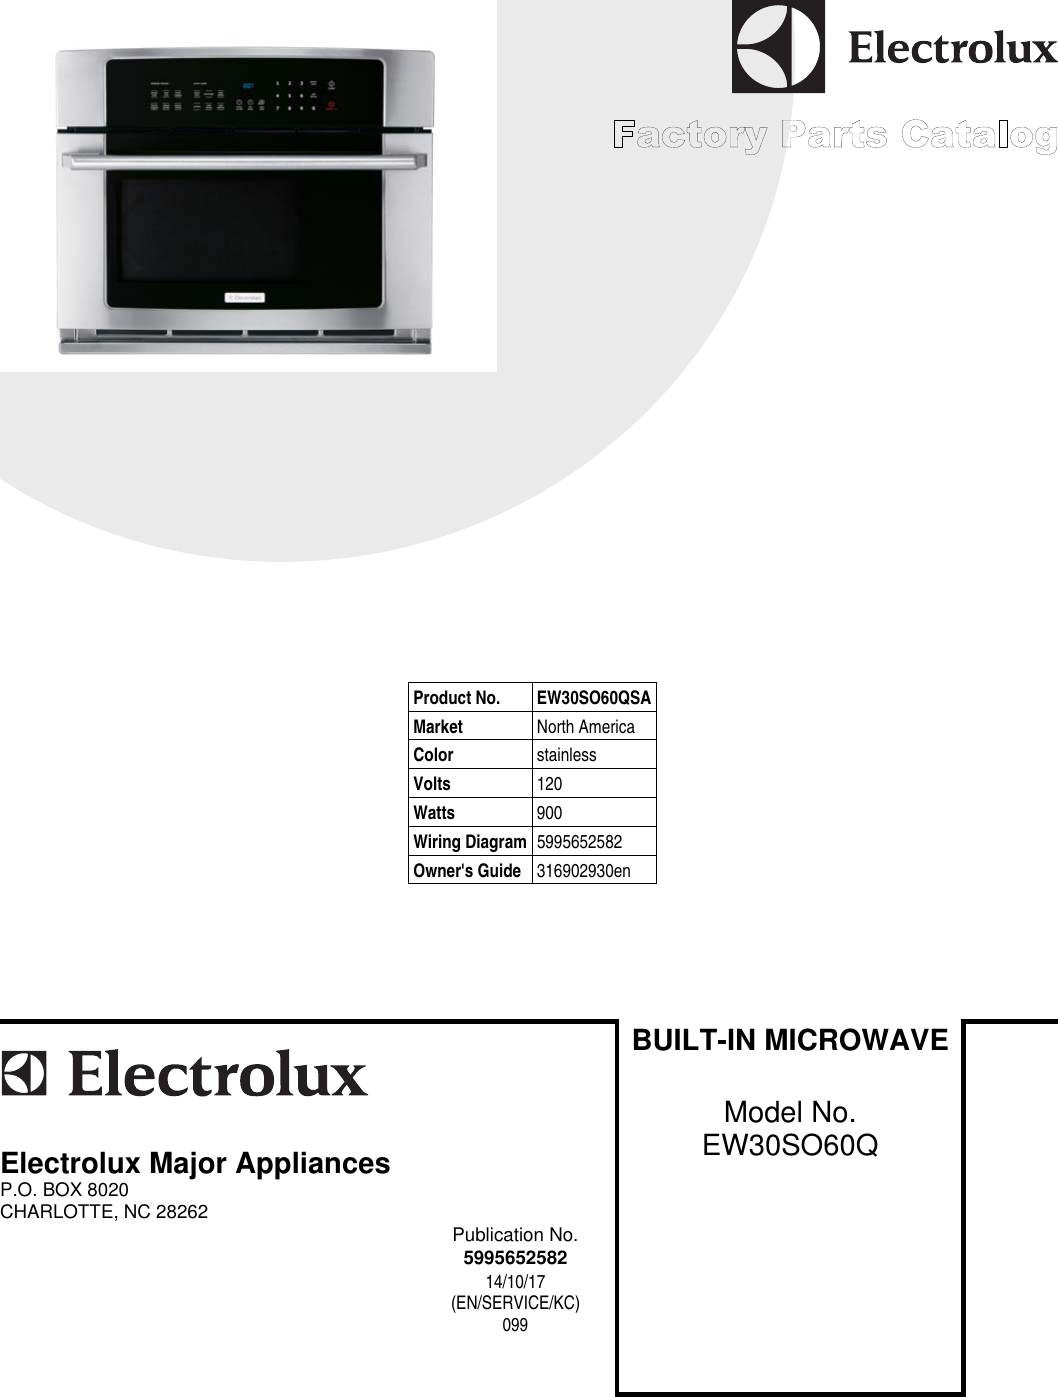 Ice Maker Wiring Diagram from usermanual.wiki